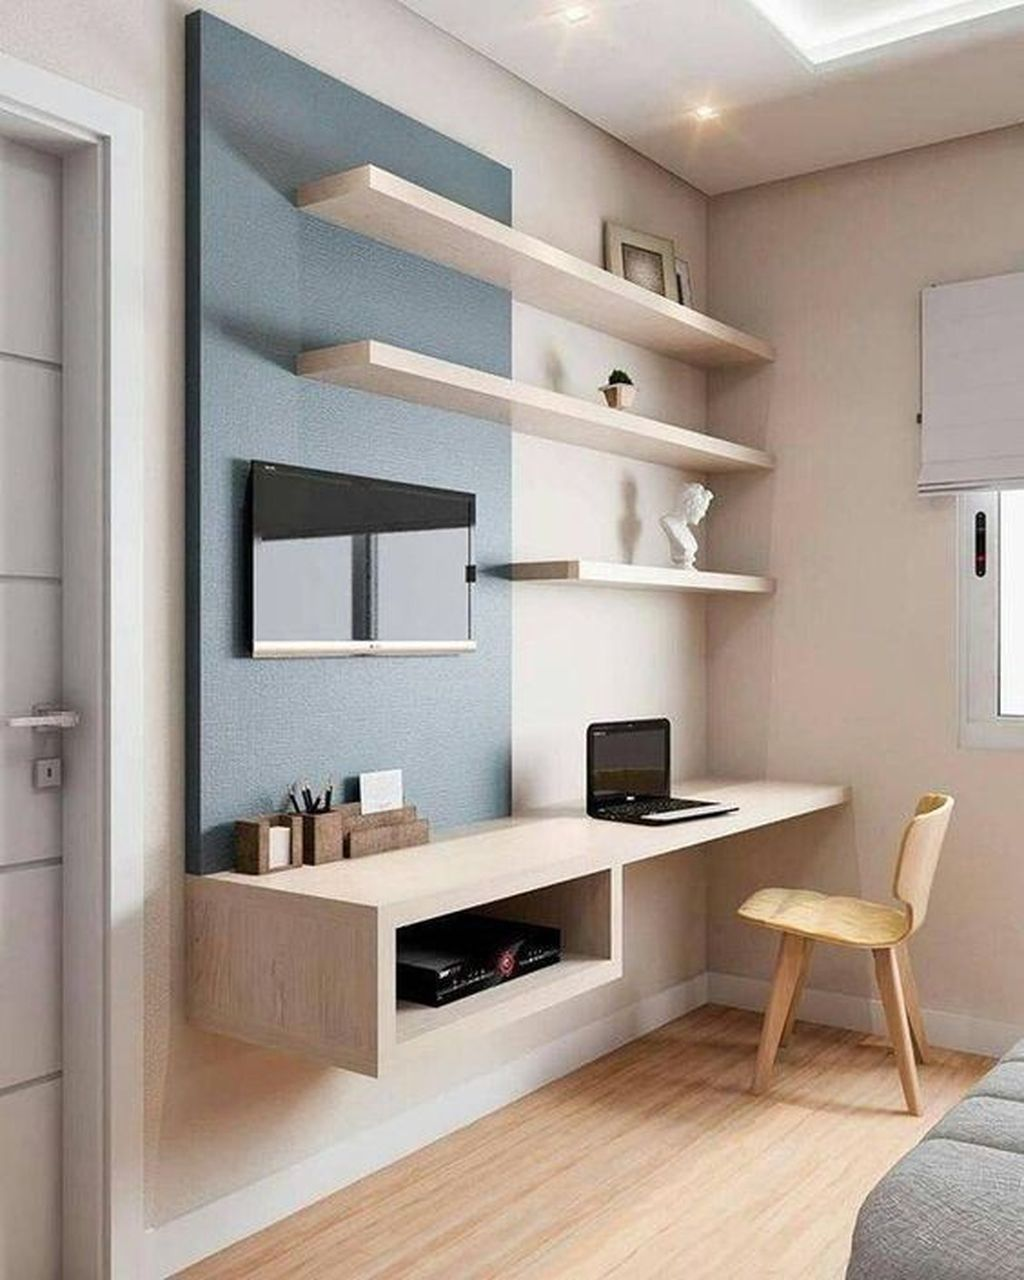 50 Inspiring Home Office Design Ideas Pimphomee Guest Room Office Desk In Living Room Modern Home Office